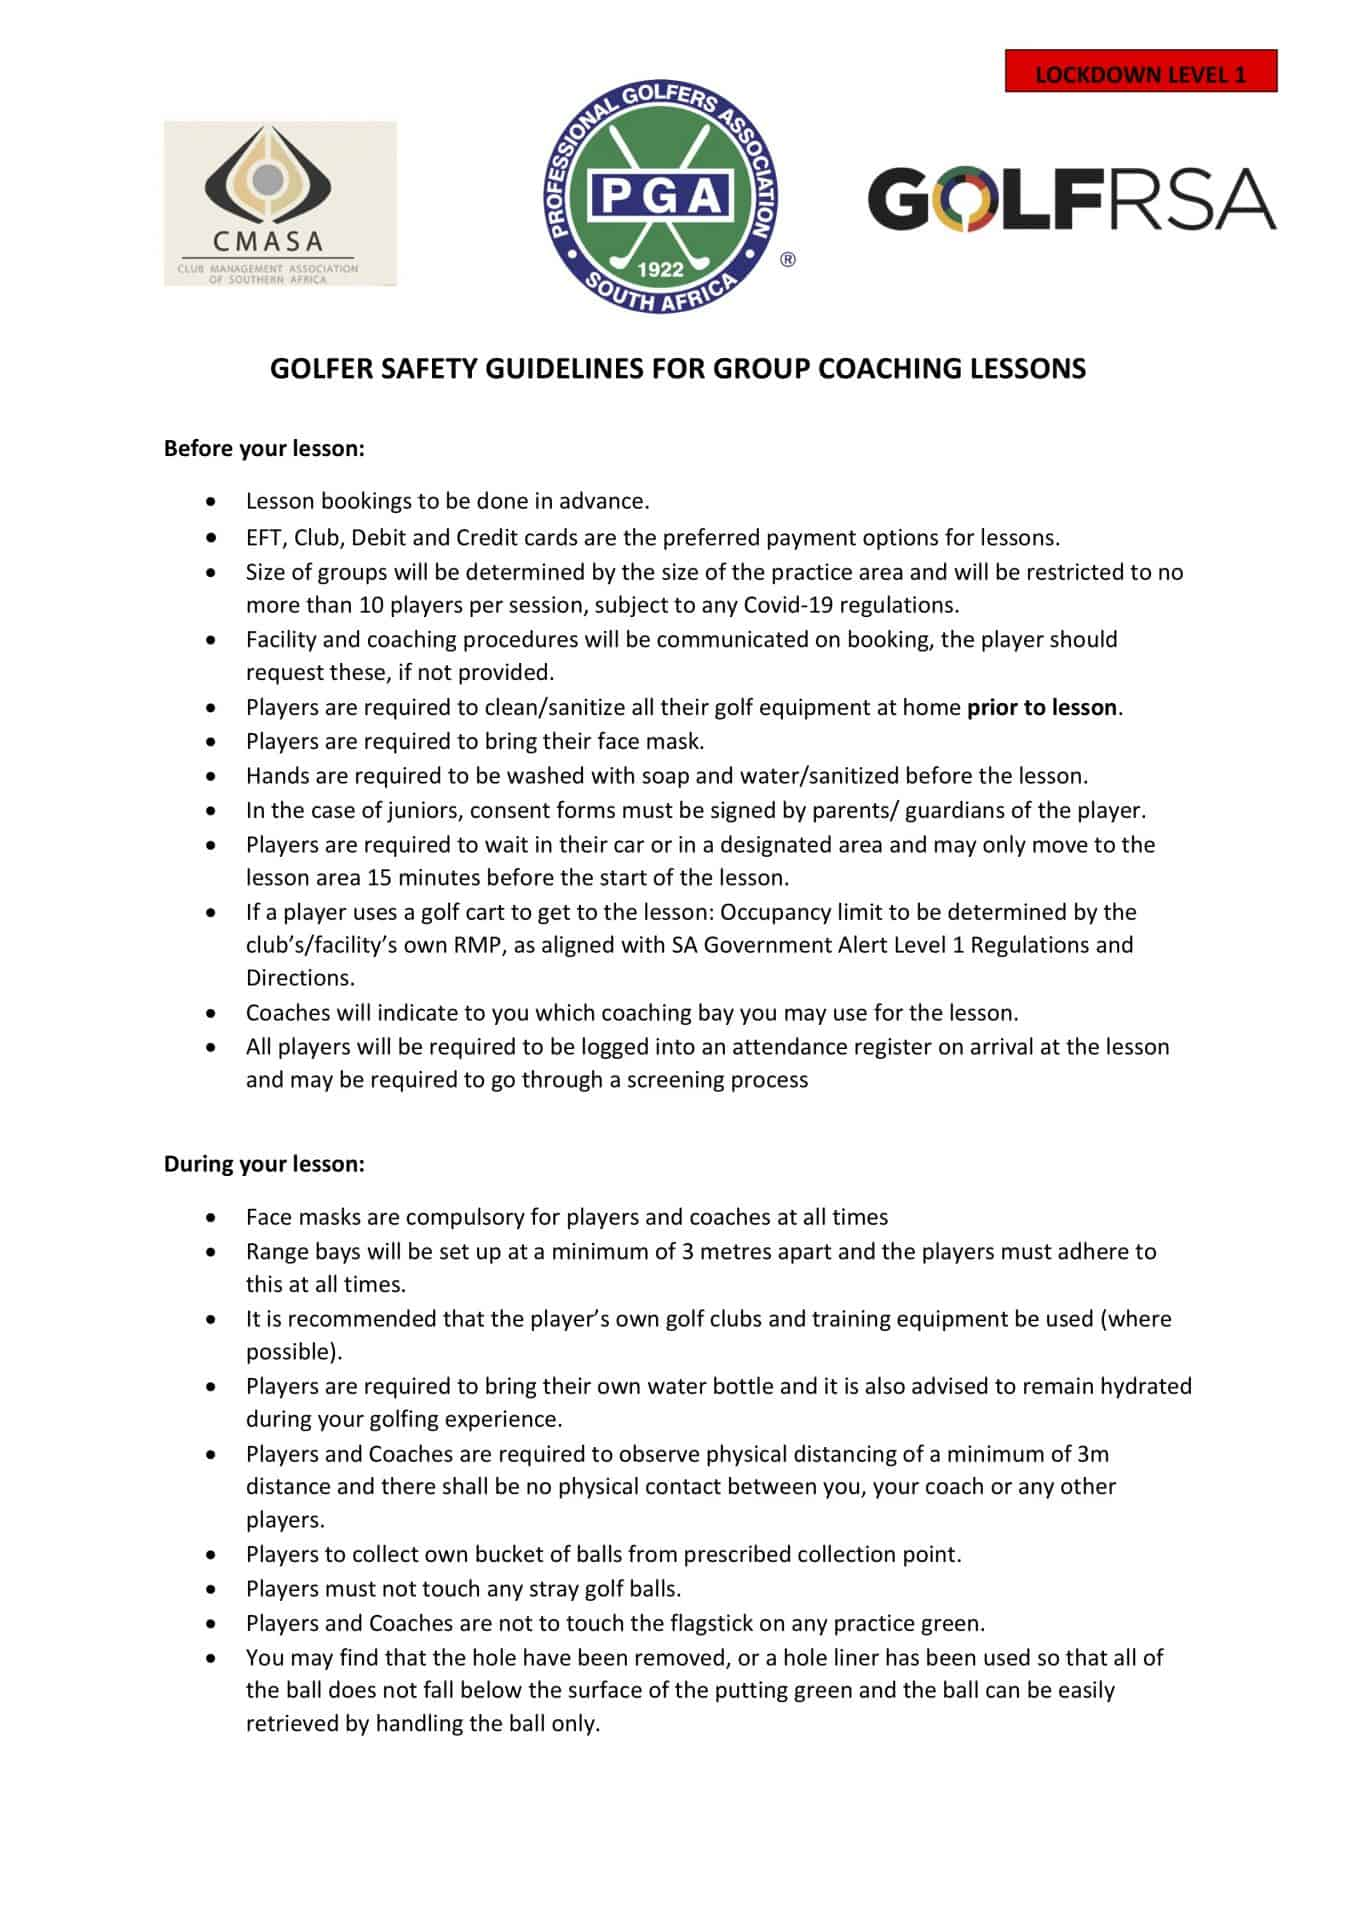 Guidelines for attending a group coaching session_v6 - 1